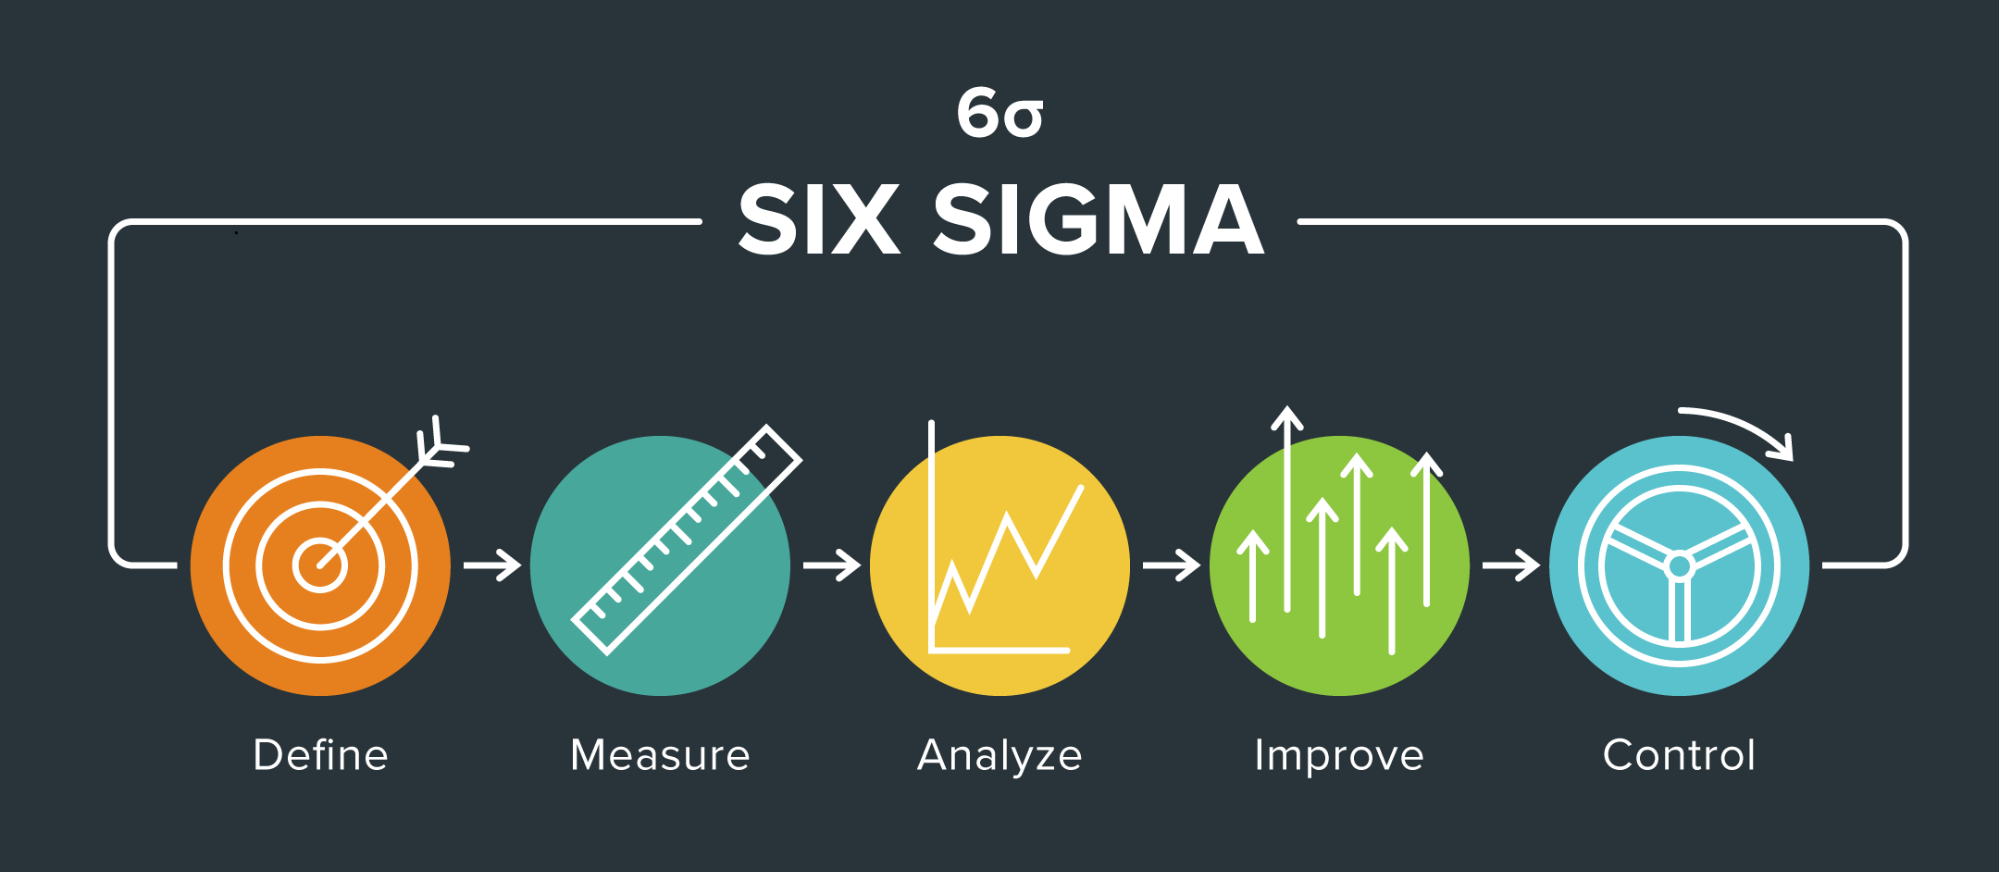 Lean Six Sigma: Where Waste Reduction Meets Quality Improvement